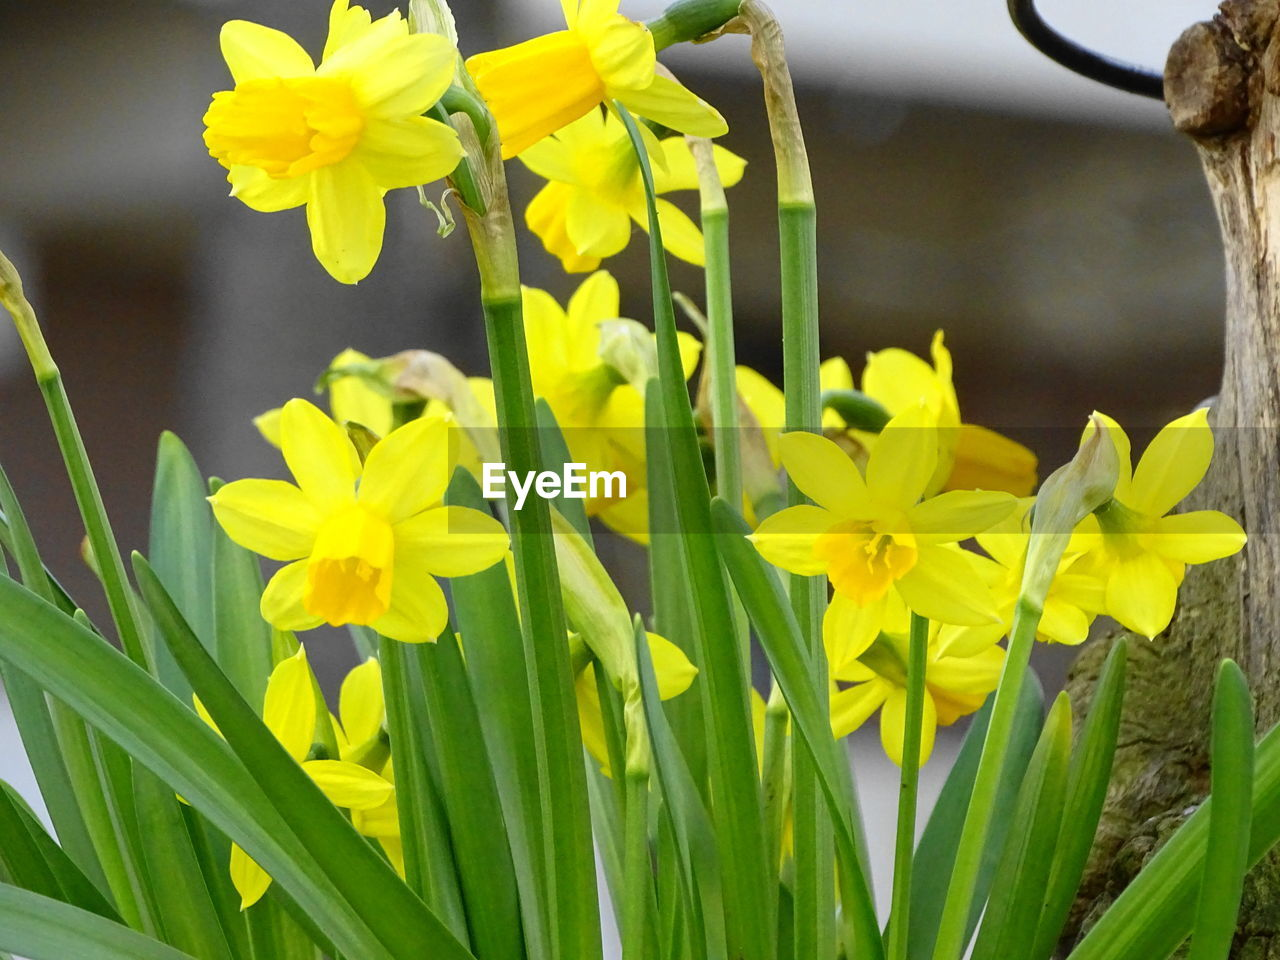 flower, flowering plant, plant, vulnerability, fragility, beauty in nature, yellow, growth, freshness, close-up, petal, flower head, inflorescence, nature, daffodil, no people, green color, day, focus on foreground, botany, outdoors, springtime